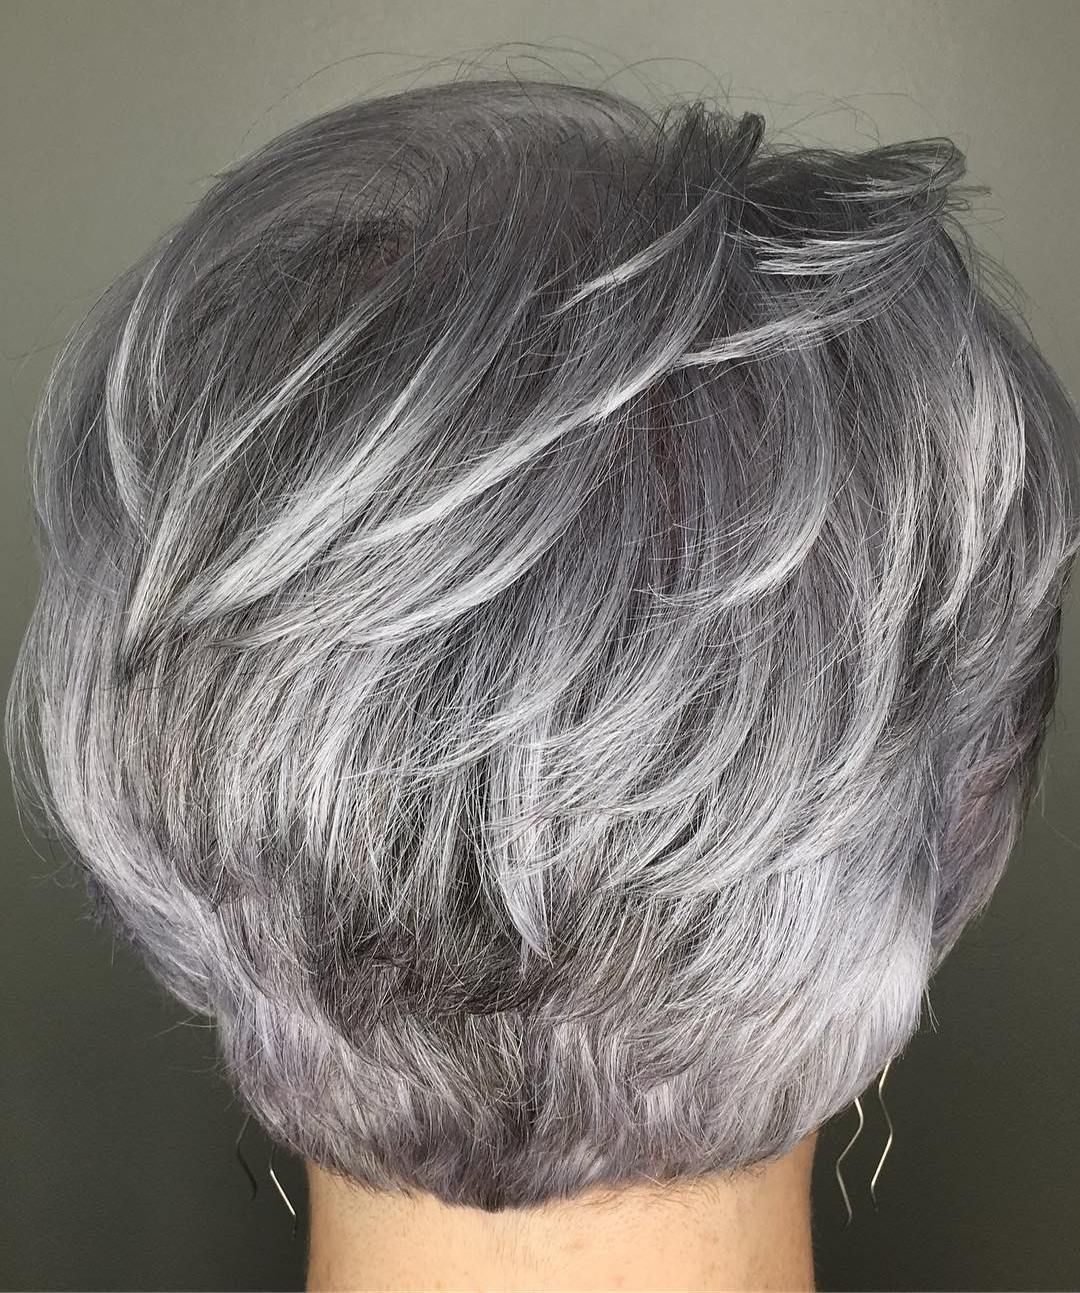 Grey Hair Styles For Younger Women Google Search Transition To Gray Hair Hair Styles Short Hair Styles